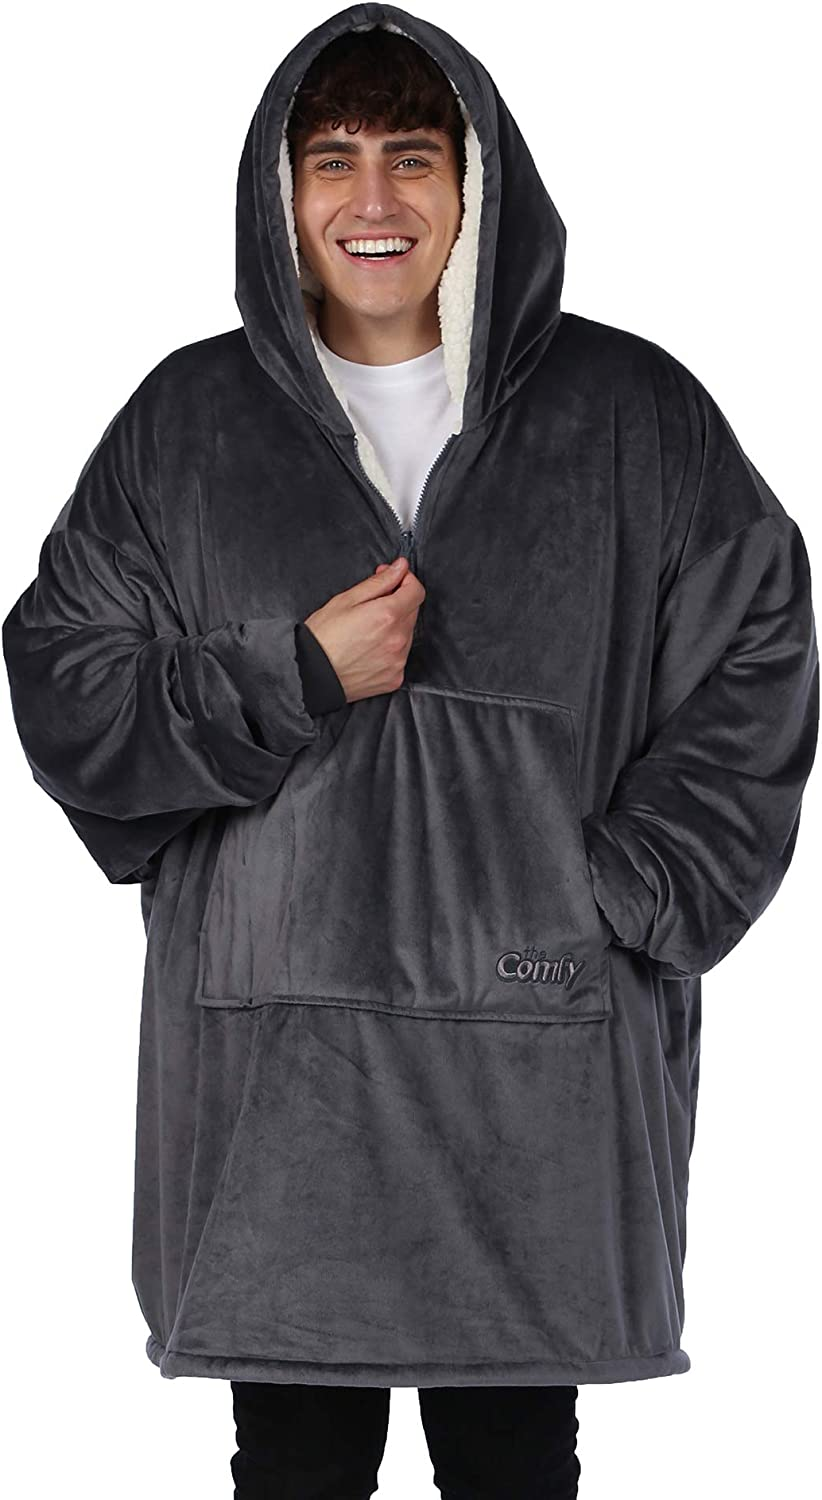 THE COMFY Original Quarter Zip   Oversized Microfiber & Sherpa Wearable Blanket with Zipper, Seen On Shark Tank, One Size Fits All